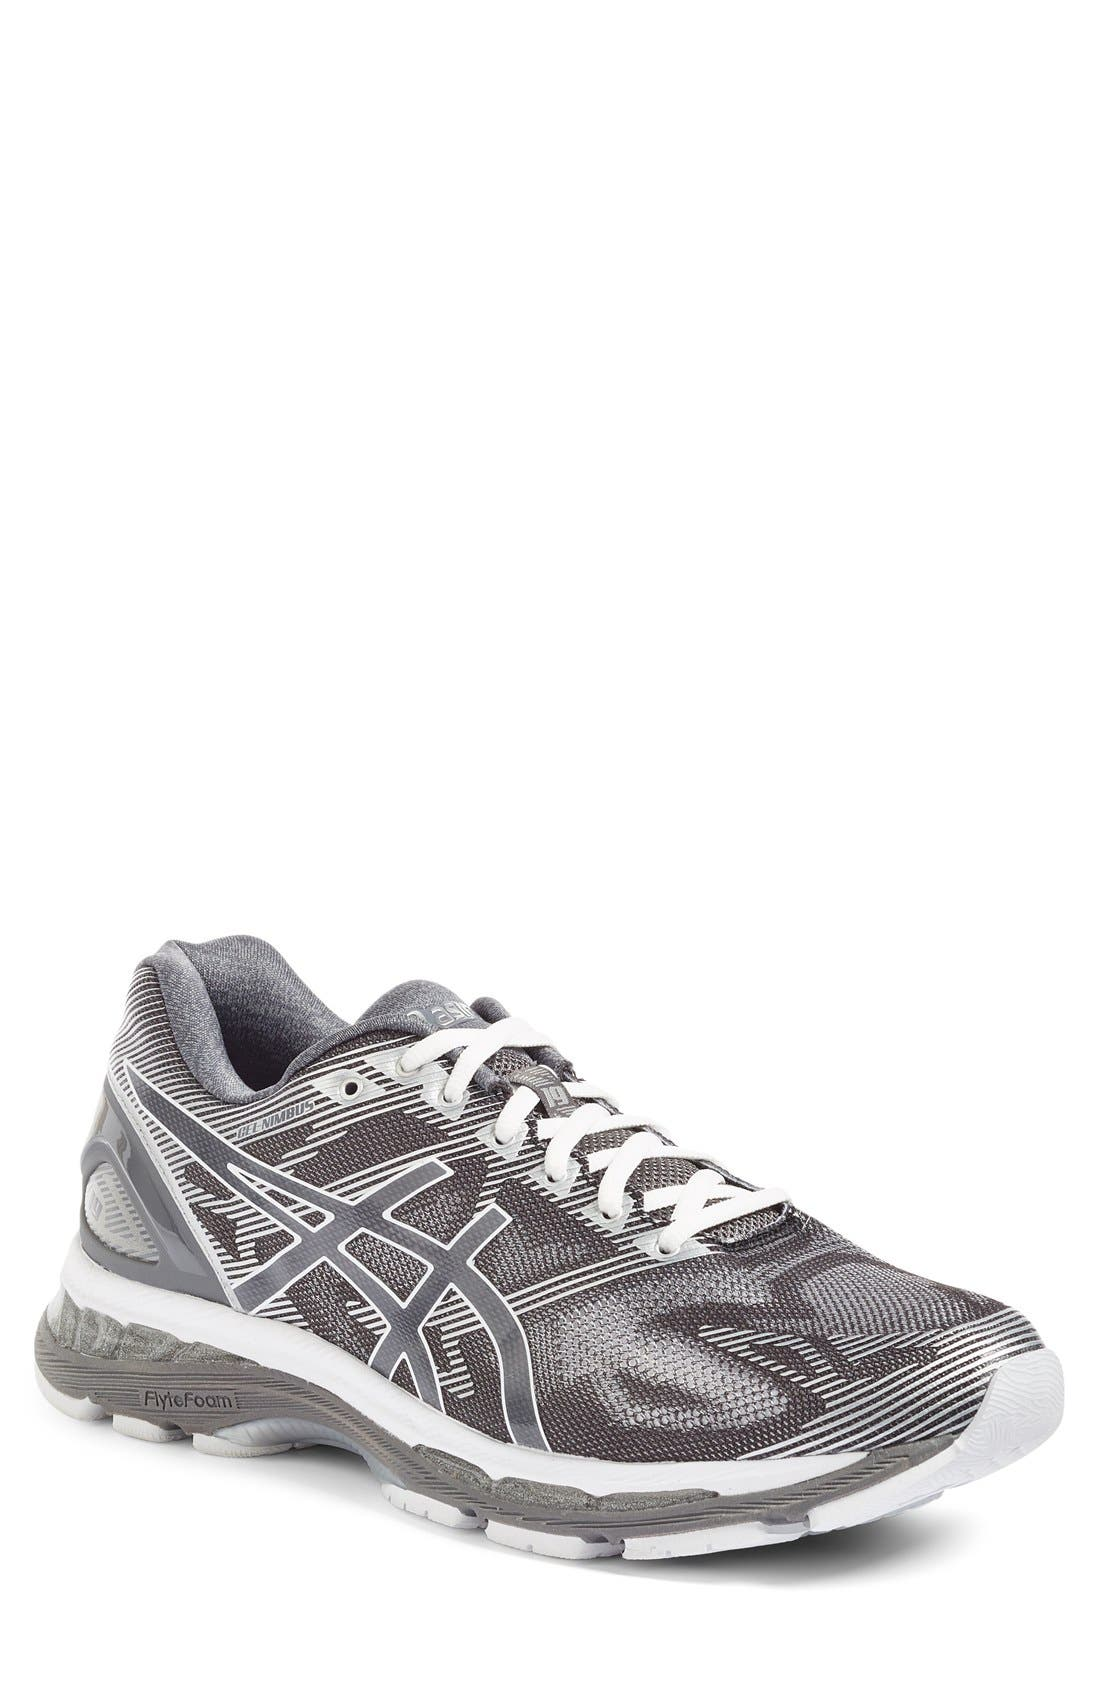 GEL<sup>®</sup>-Nimbus 19 Running Shoe,                         Main,                         color, Carbon/ White/ Silver